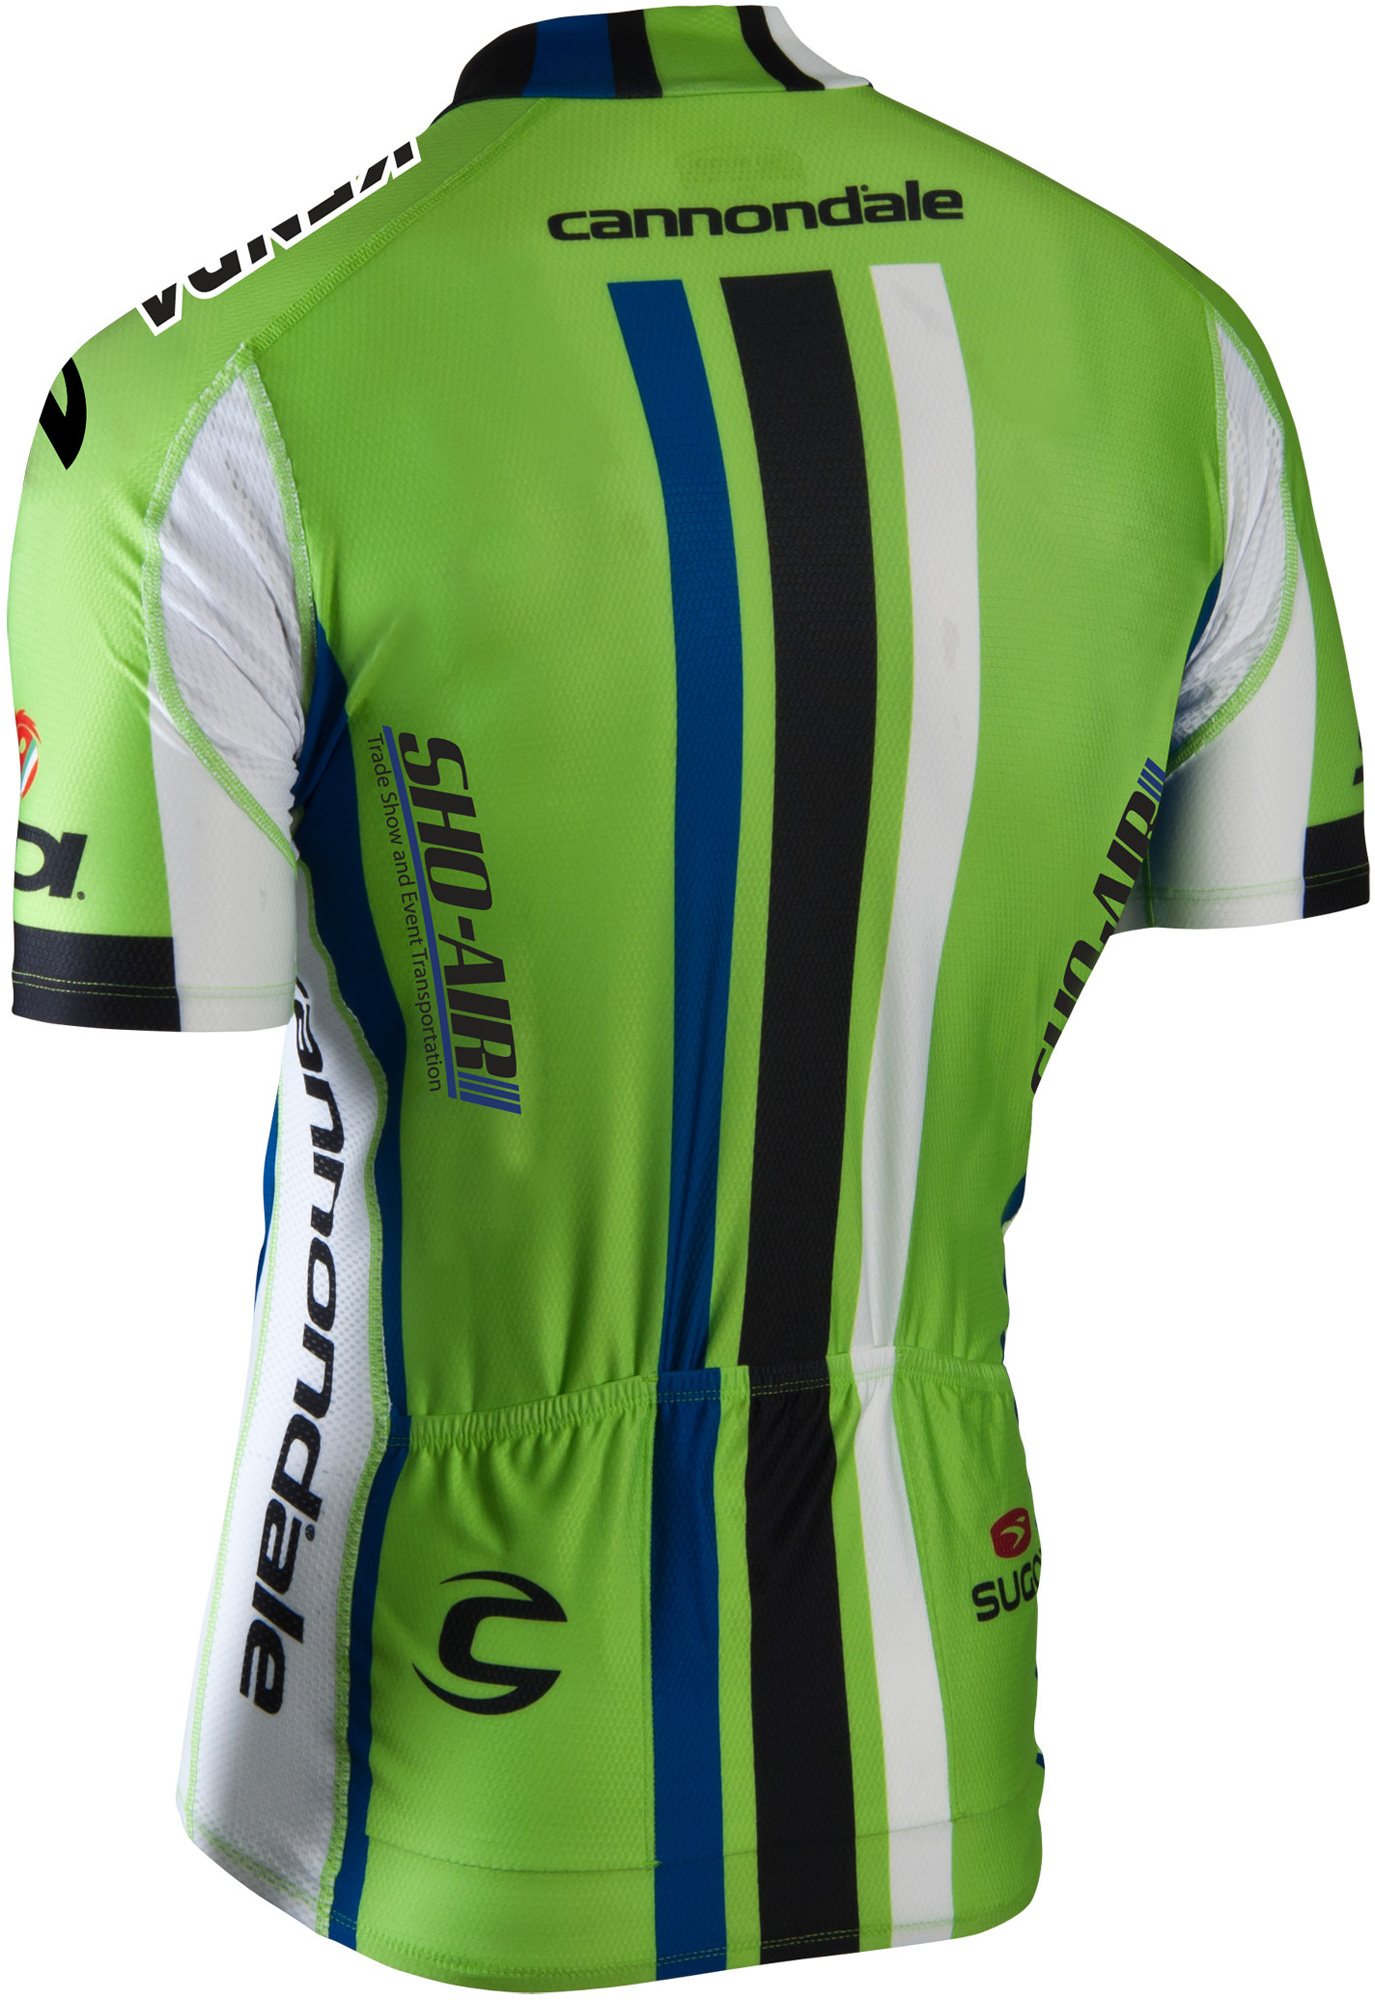 05ae1134090 Sugoi Cannondale Pro Cycling Team Jersey - Montclair Bike Shop | Diamond  Cycle